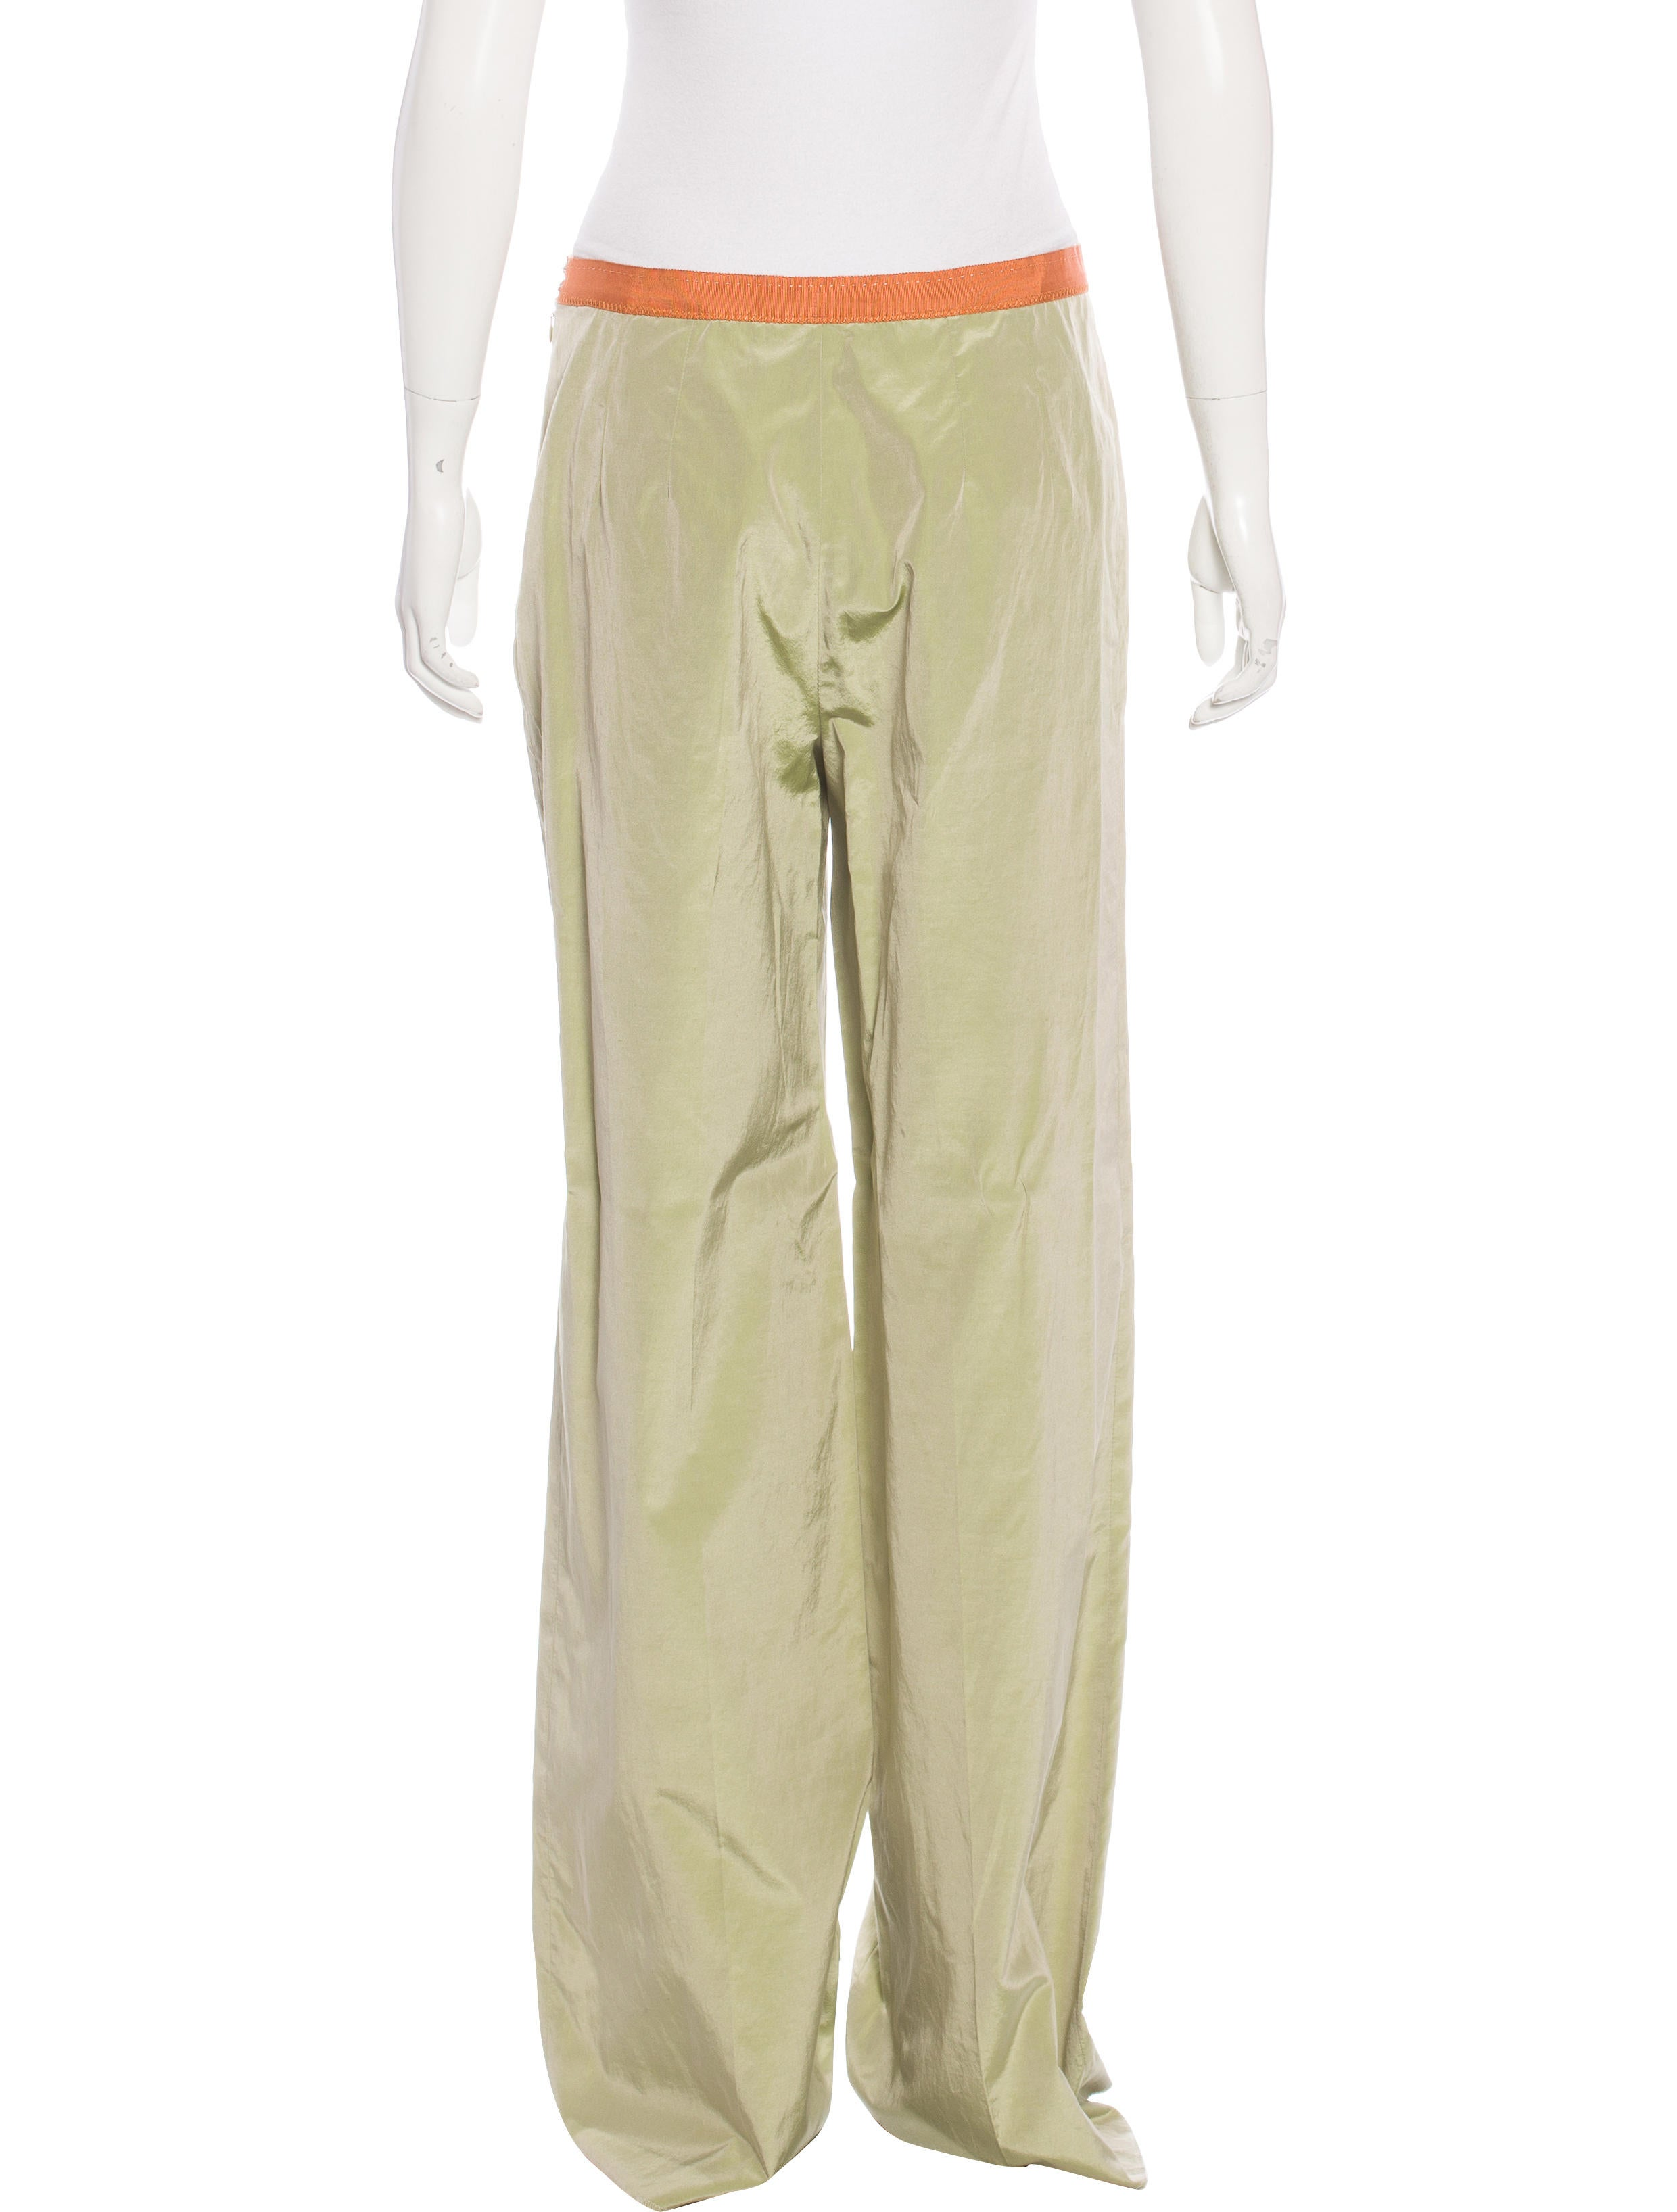 Go Silk Silk Wide-Leg Pants Details Casual silk pants by Go Silk, available in your choice of color. Approx. measurements: 11